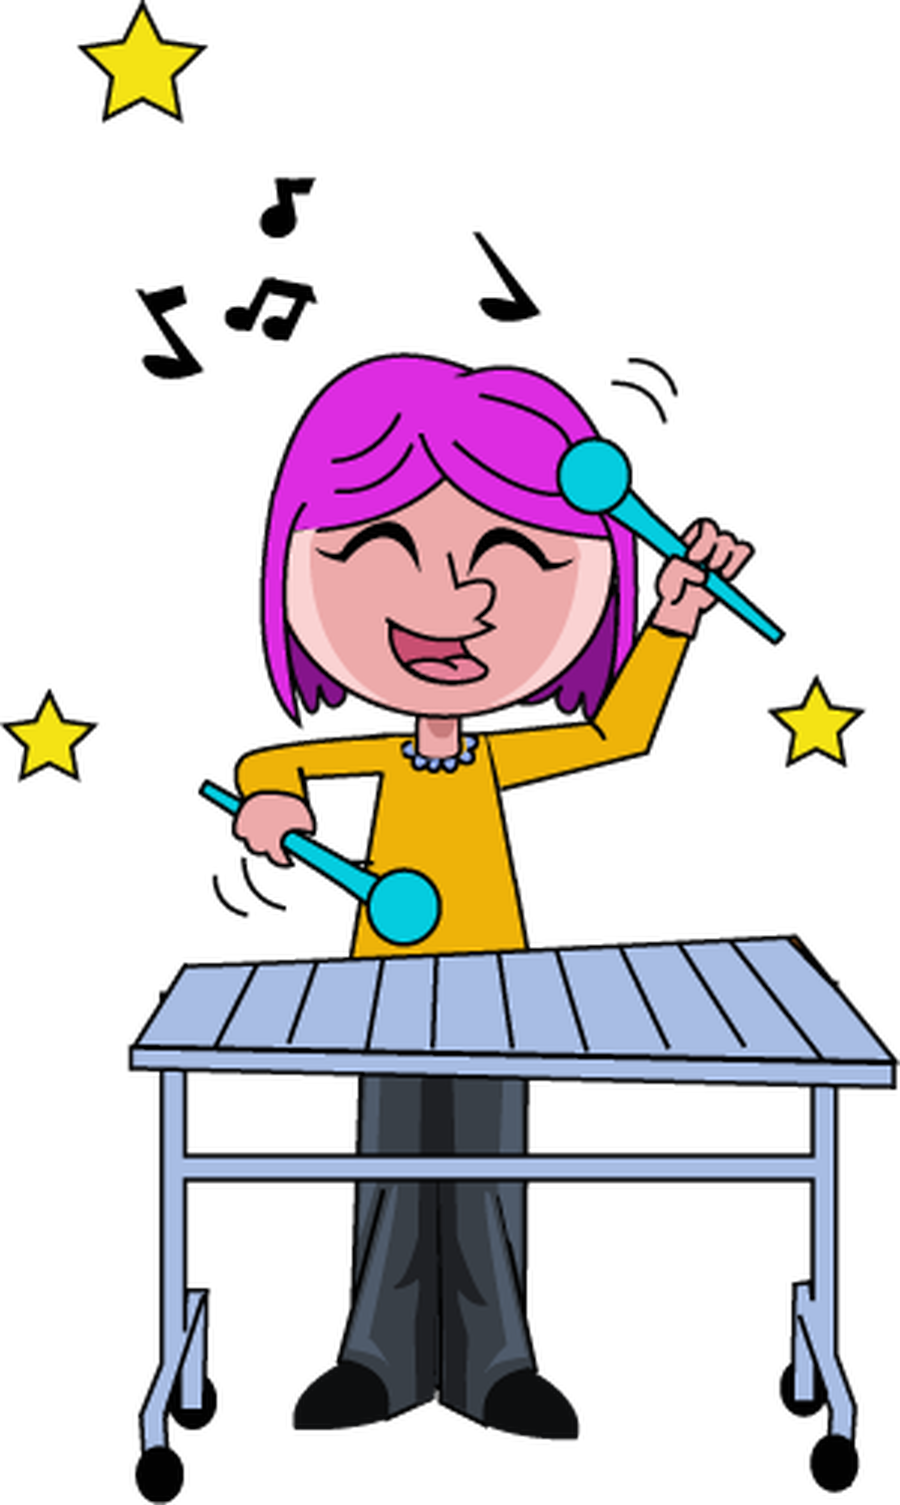 Shears green infant school. Xylophone clipart child's